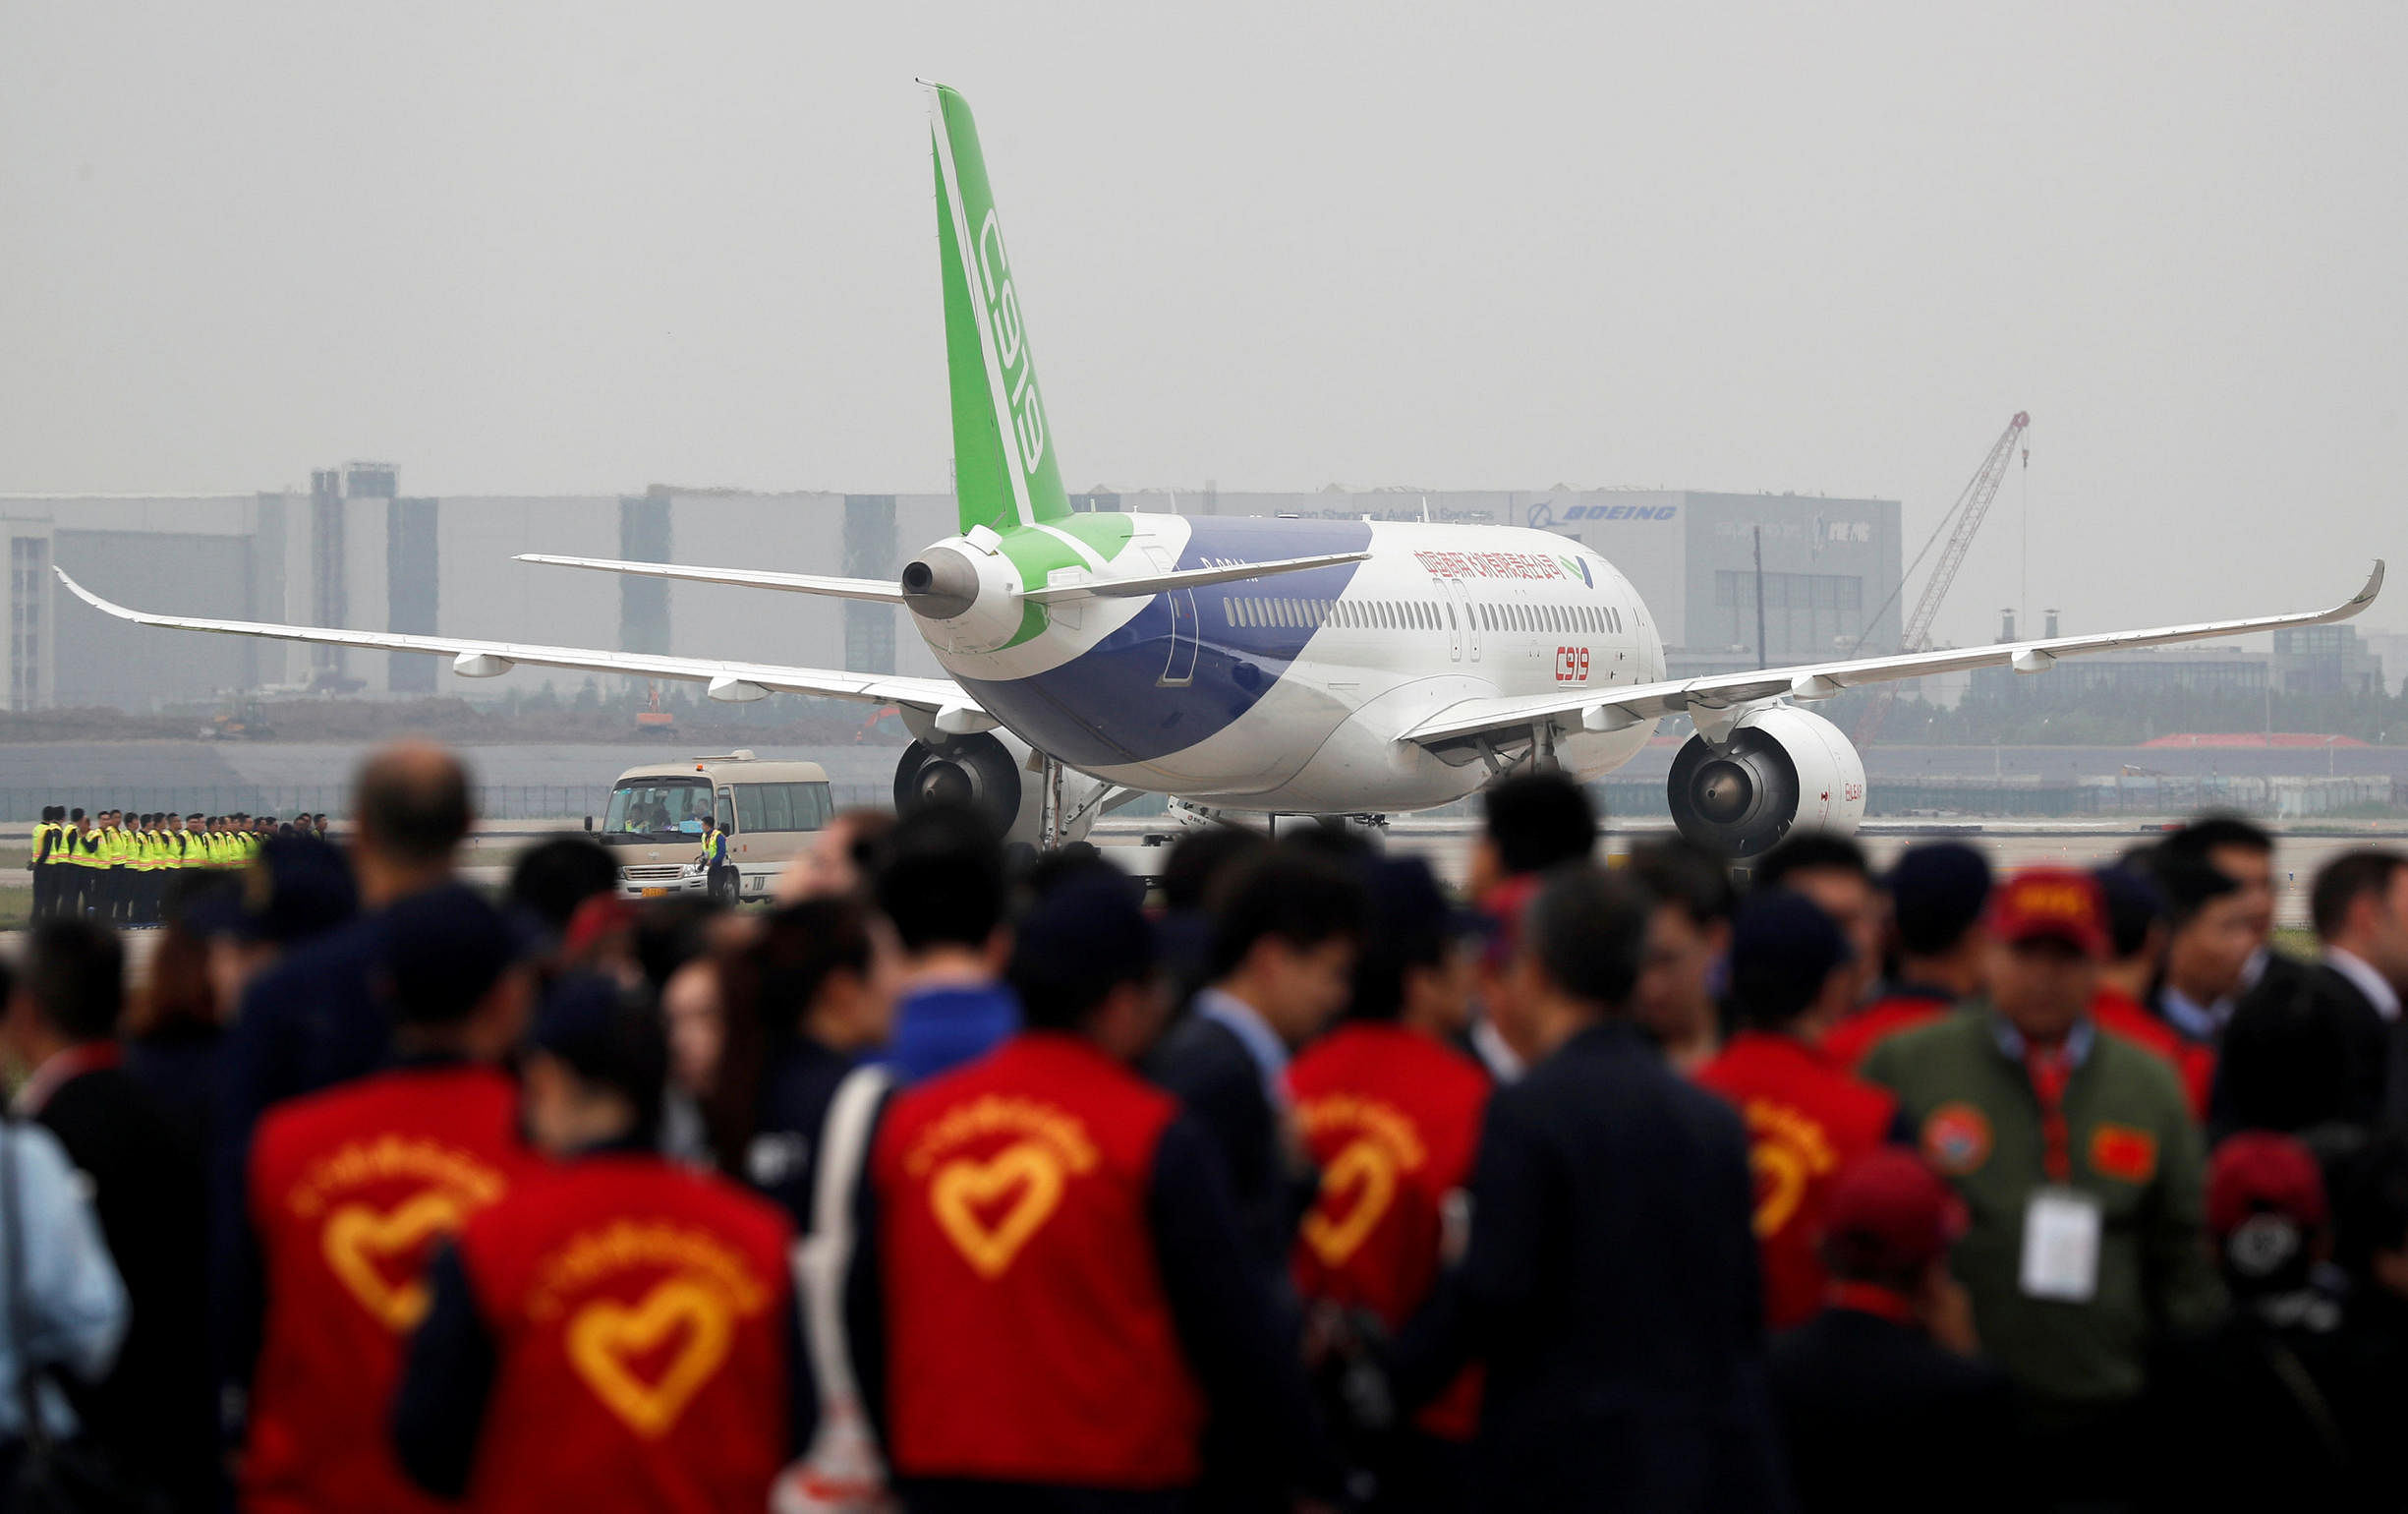 China's home-grown C919 passenger jet takes off on maiden ...